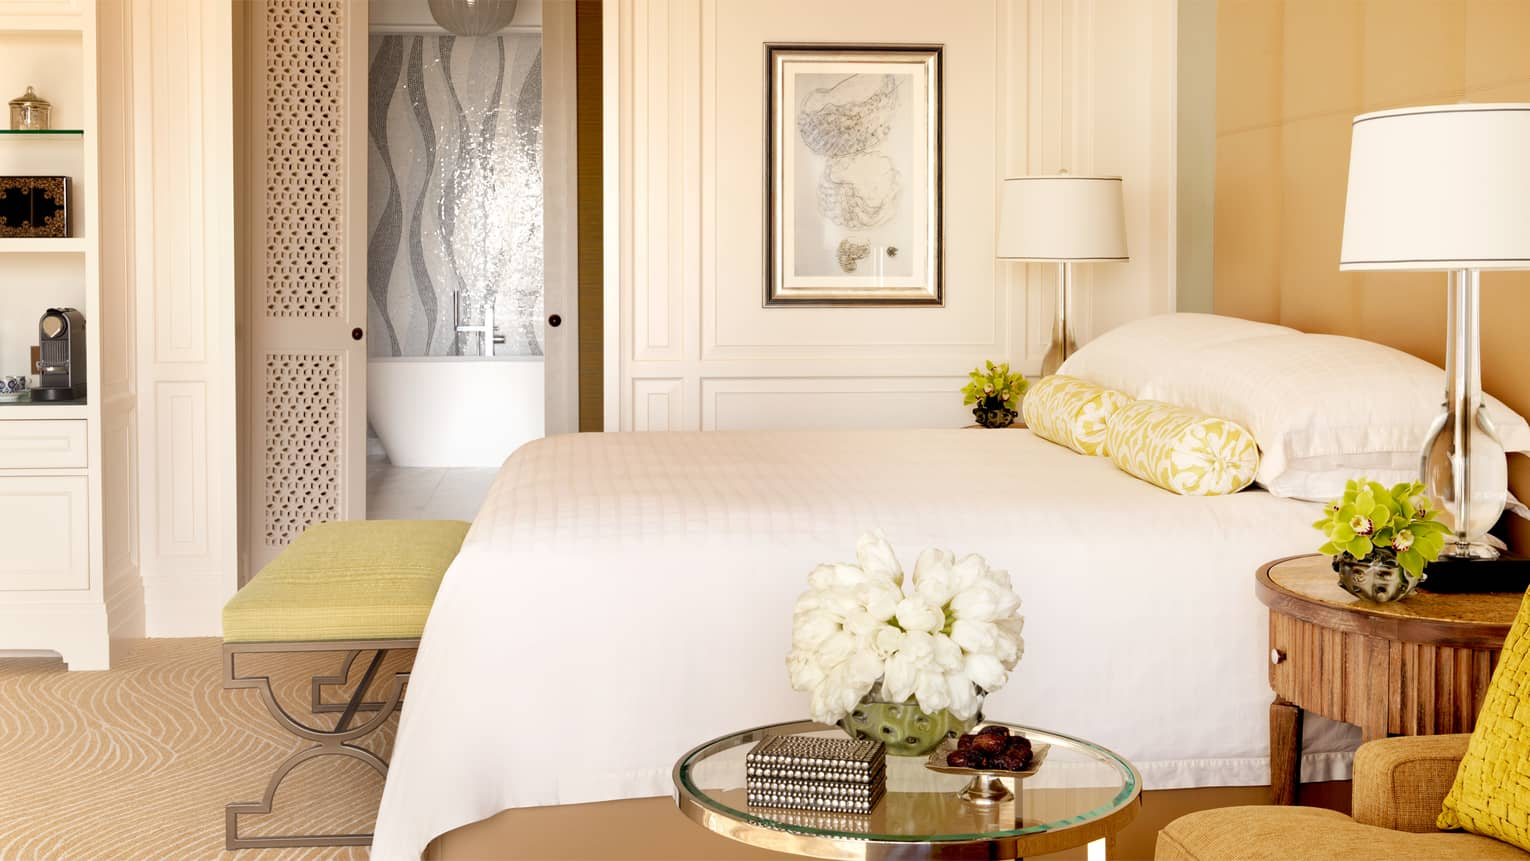 White bed with yellow bench in front of sliding door to bathroom with white freestanding tub